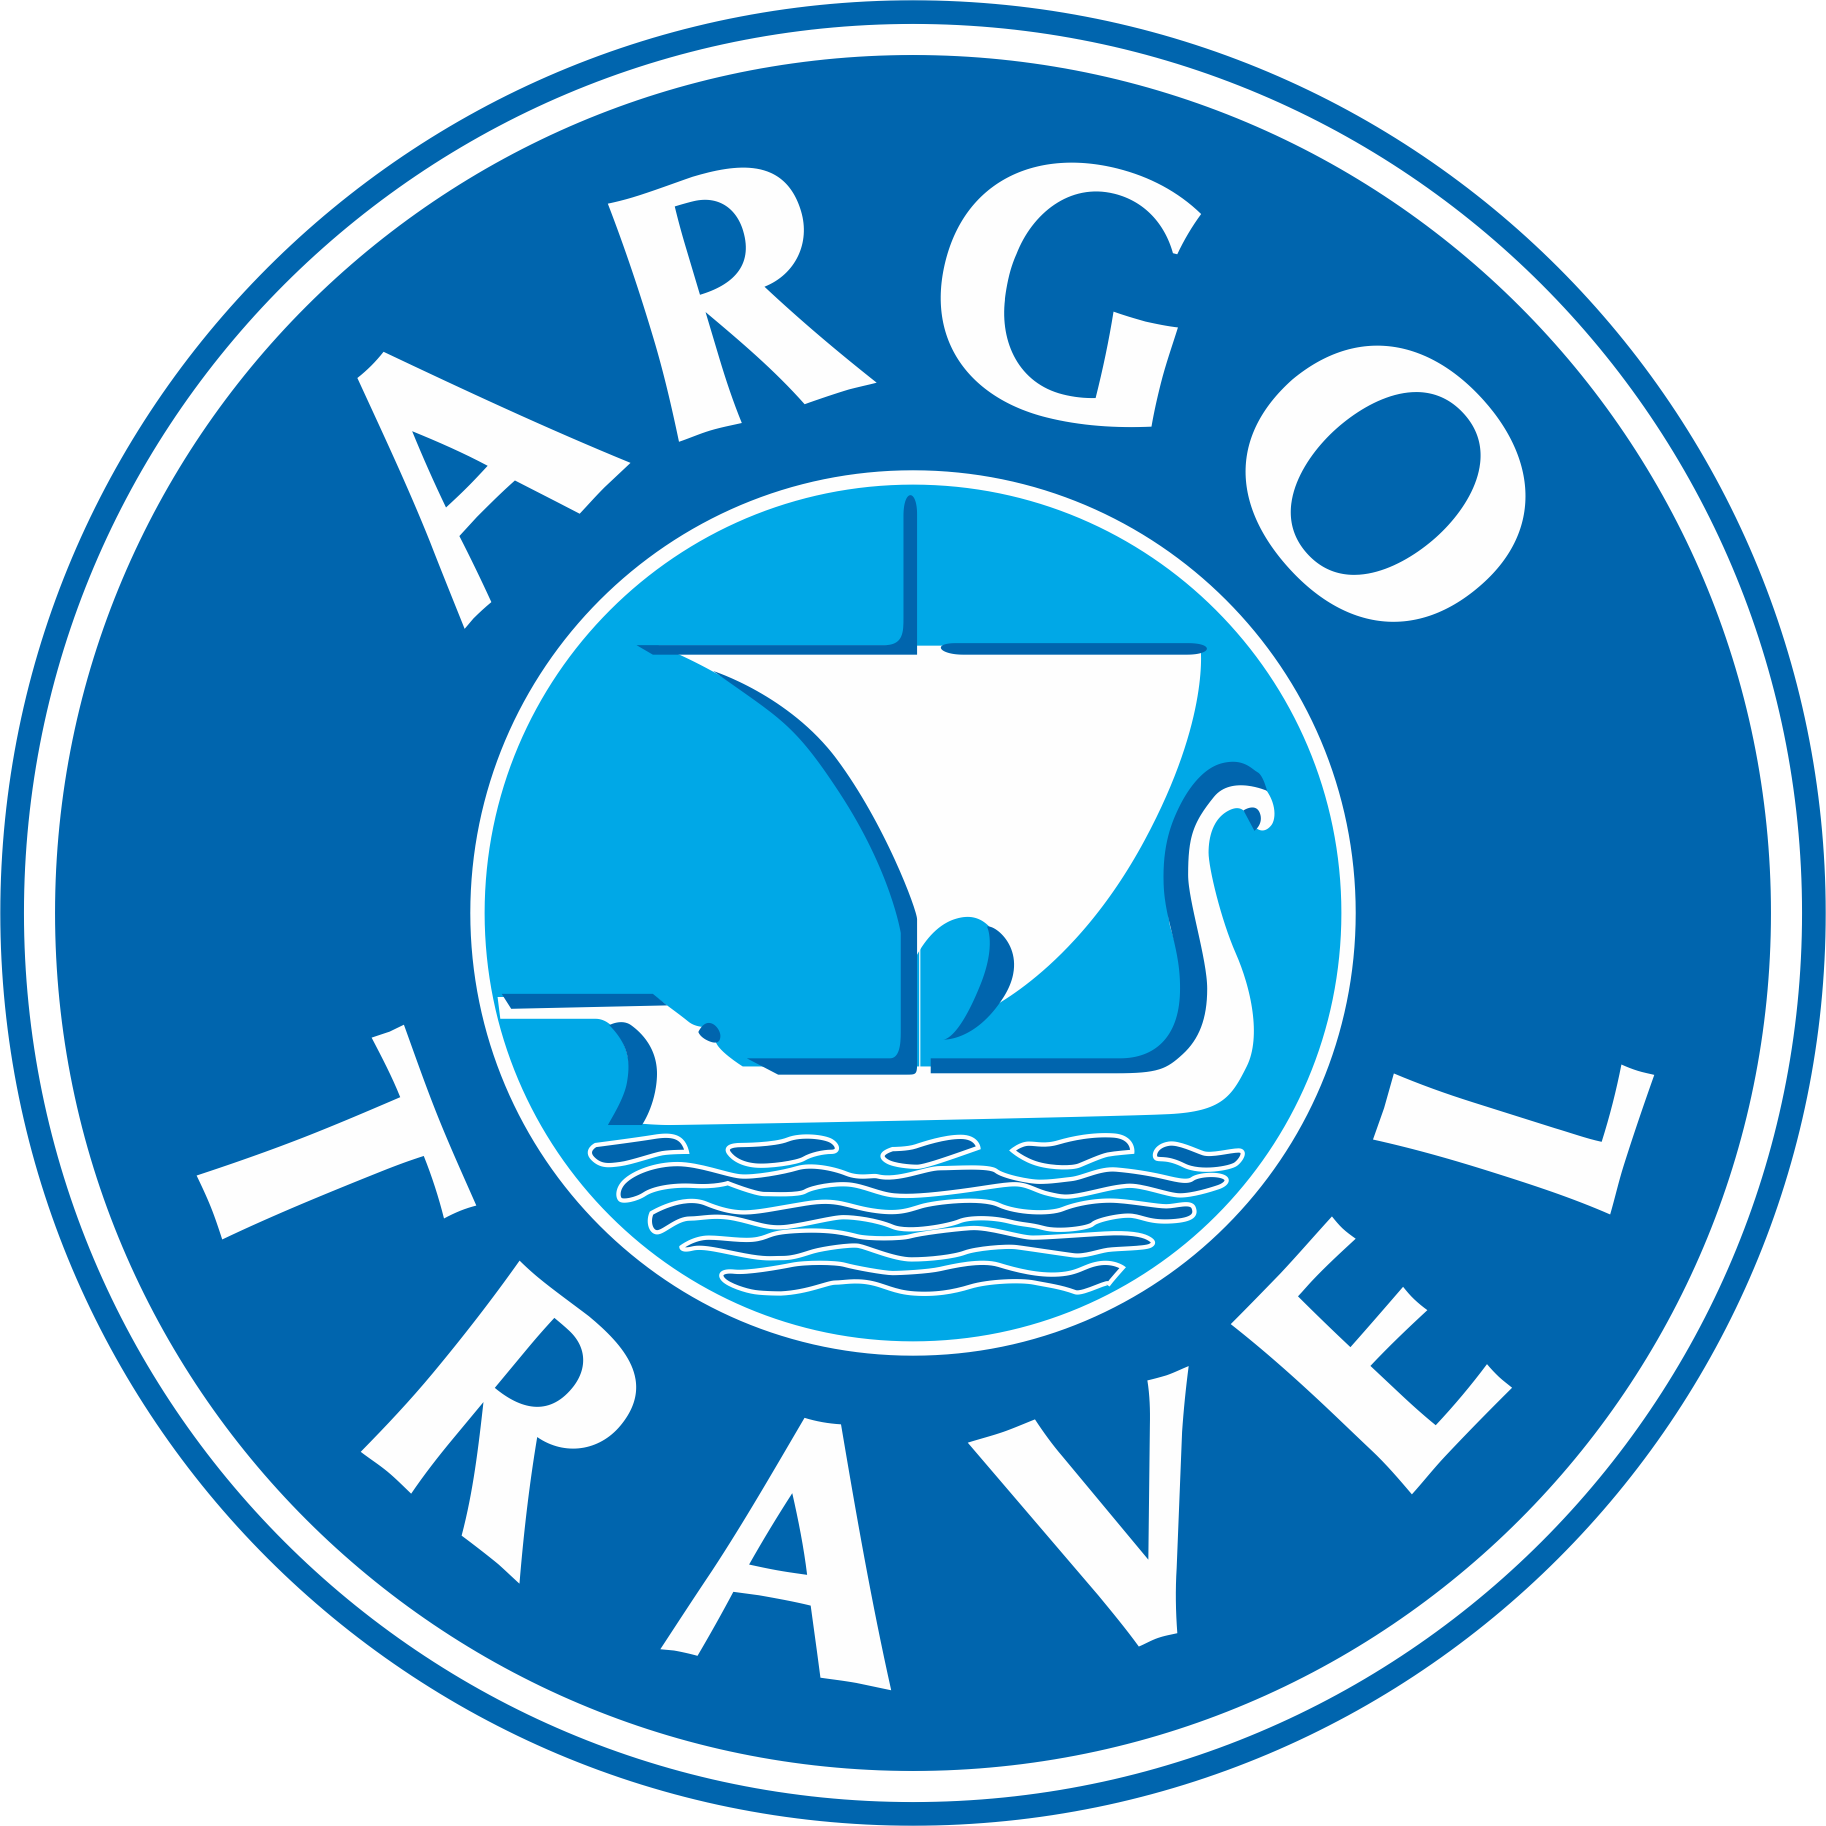 Location clipart travel group. Aegean pro am contact